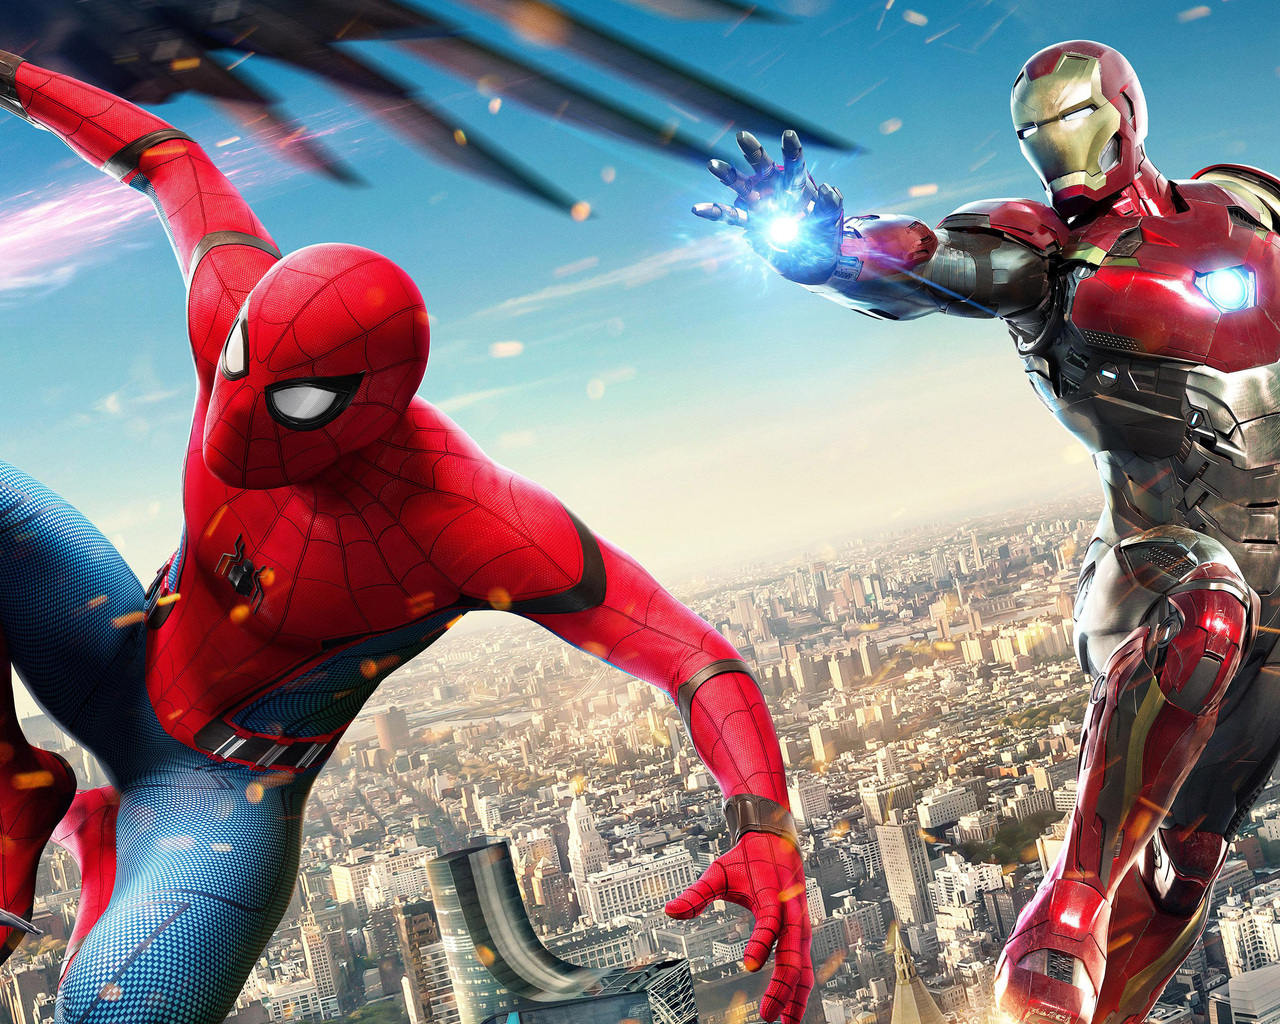 iron-man-and-spiderman-in-spiderman-homecoming-4k-hd-tf.jpg